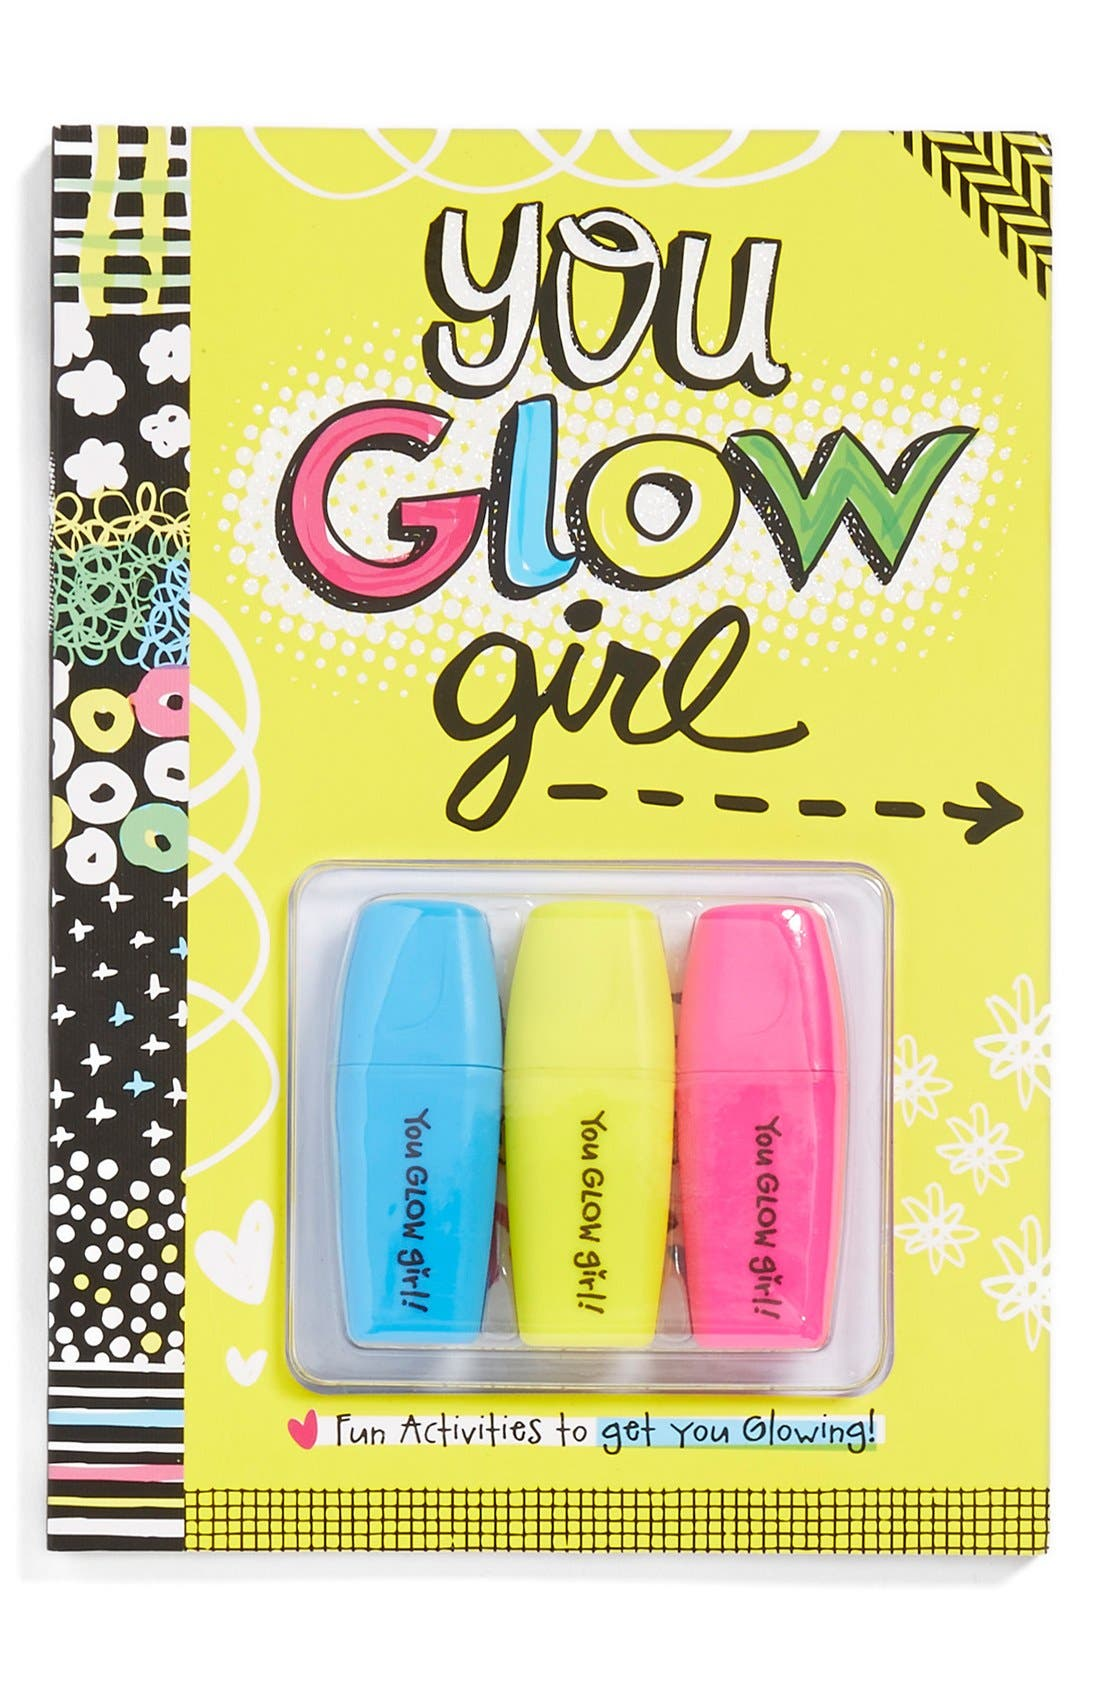 FINE PRINT PUBLISHING 'You Glow Girl' Activity Book & Highlighters, Main, color, 700